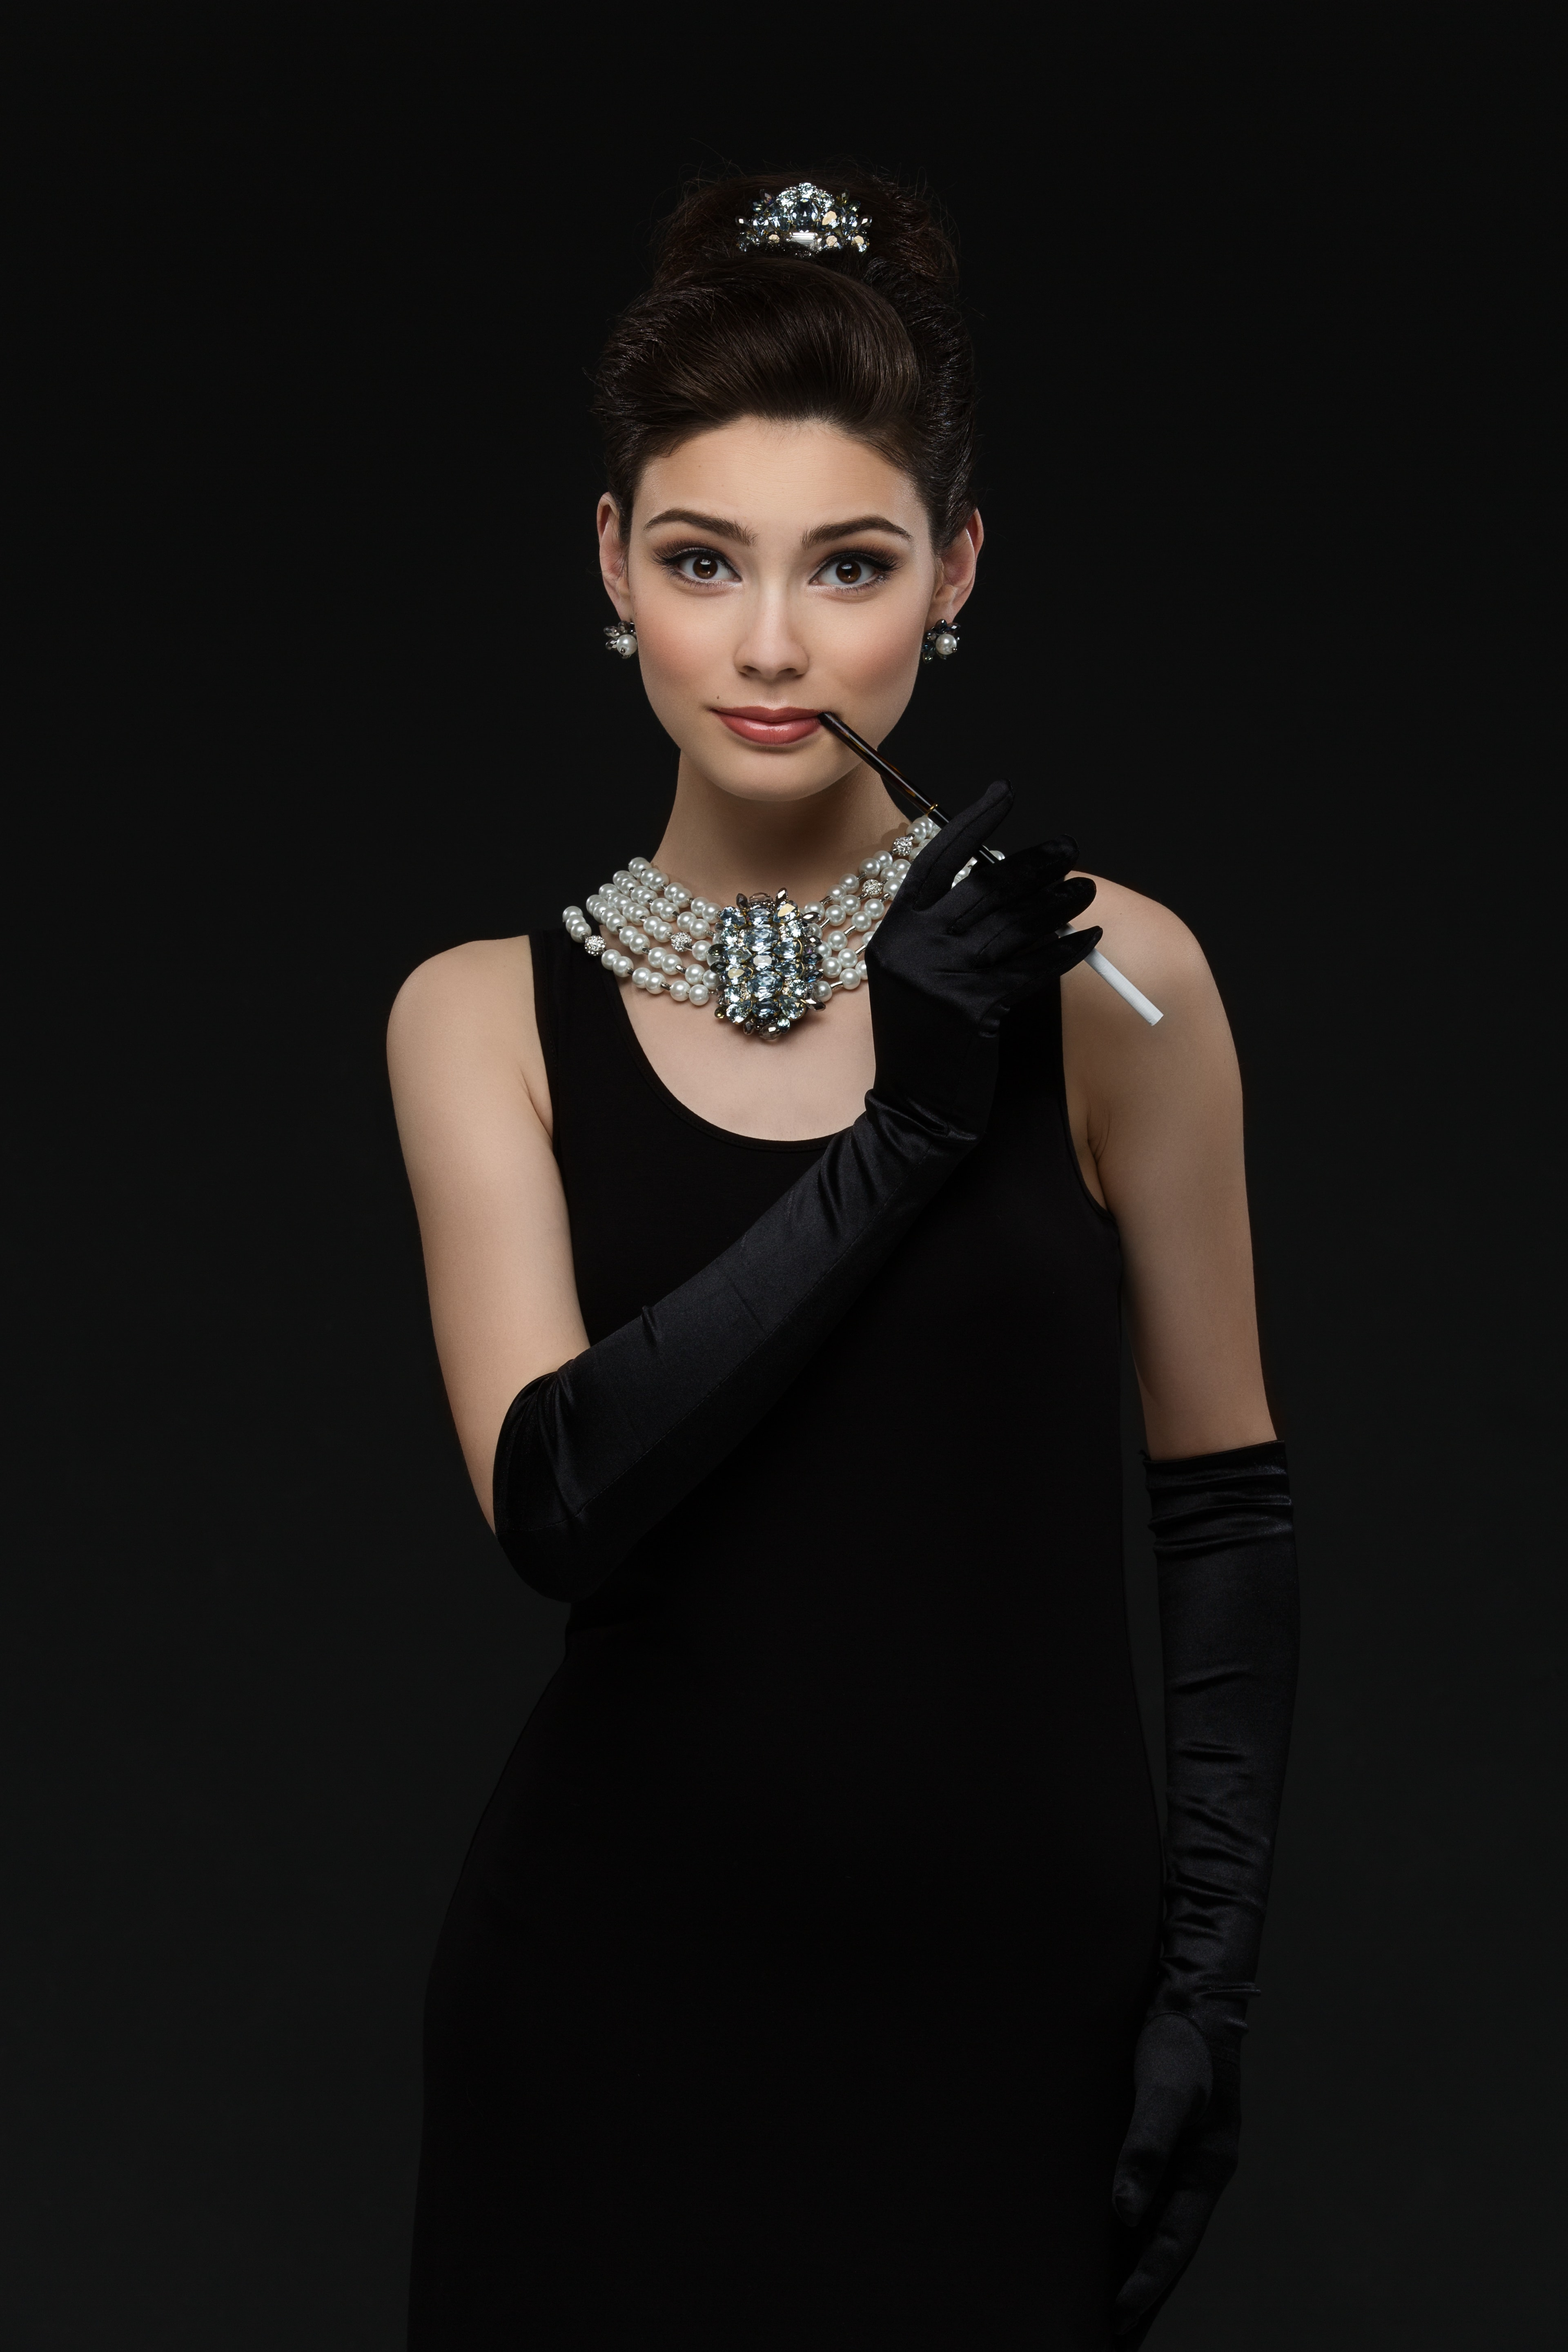 Diy Audrey Hepburn Costume Using Clothes From Your